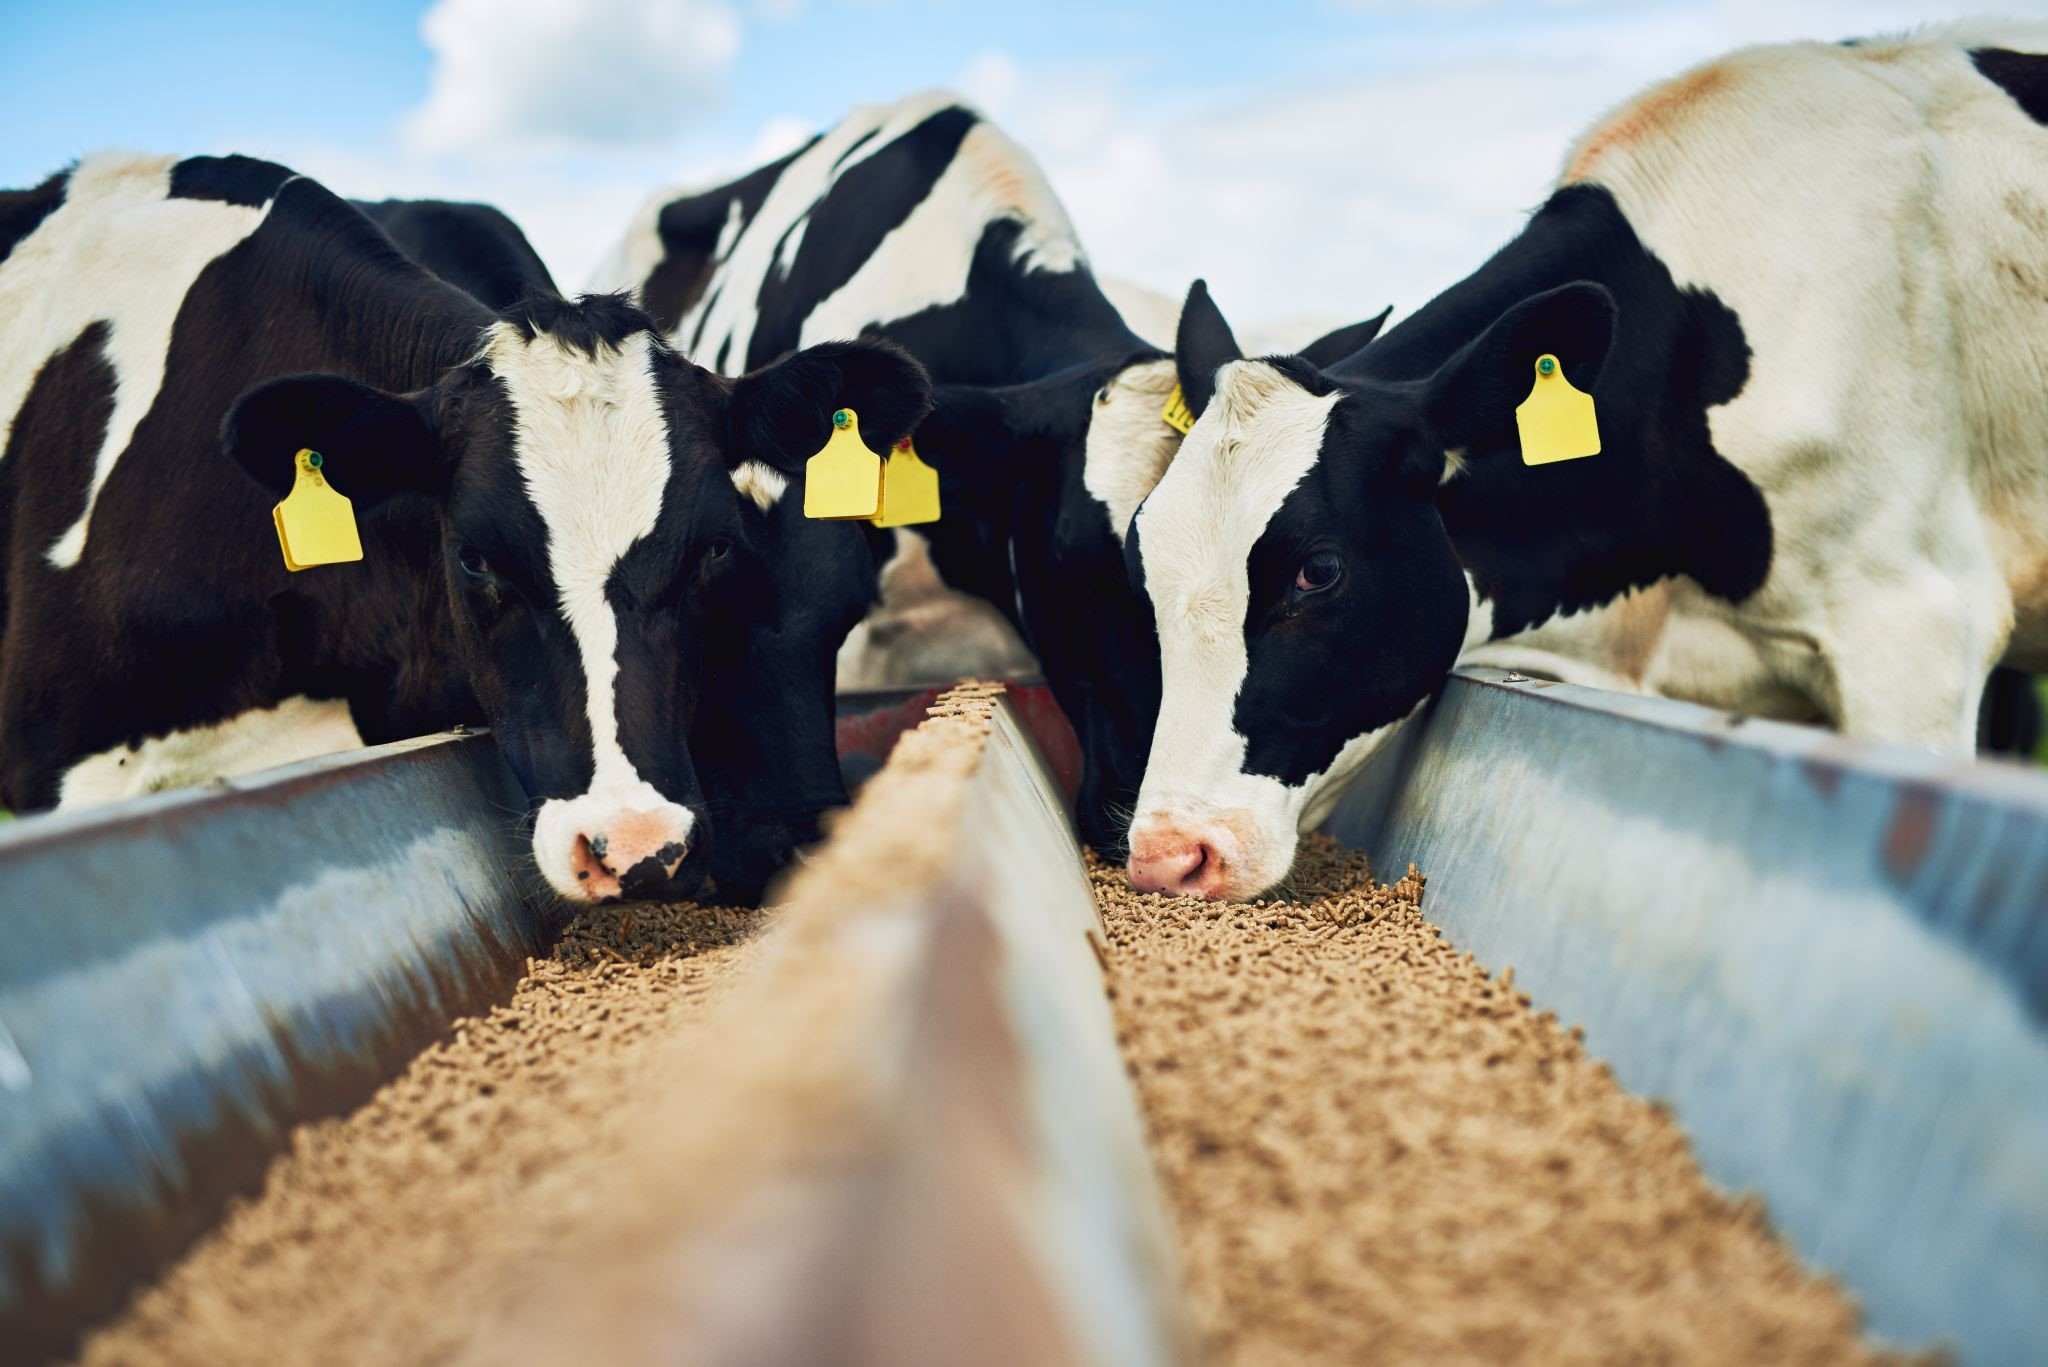 picture of cows eating grain from trough